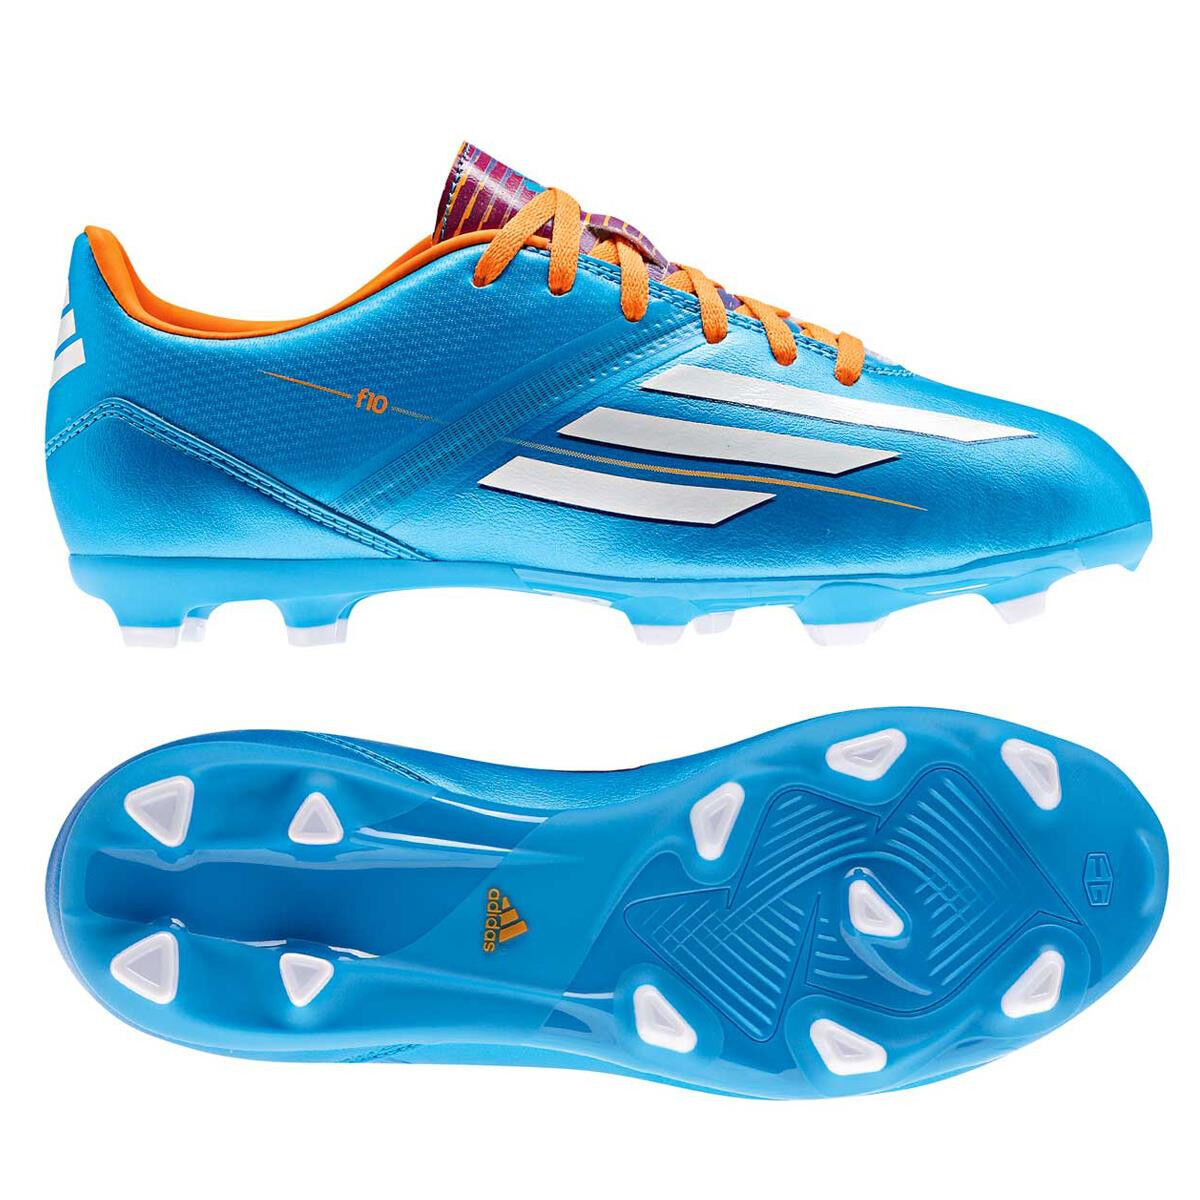 Adidas F 10 SP World Cup WC 2014 TRX FG Soccer shoes bluee   White KIDS - YOUTH